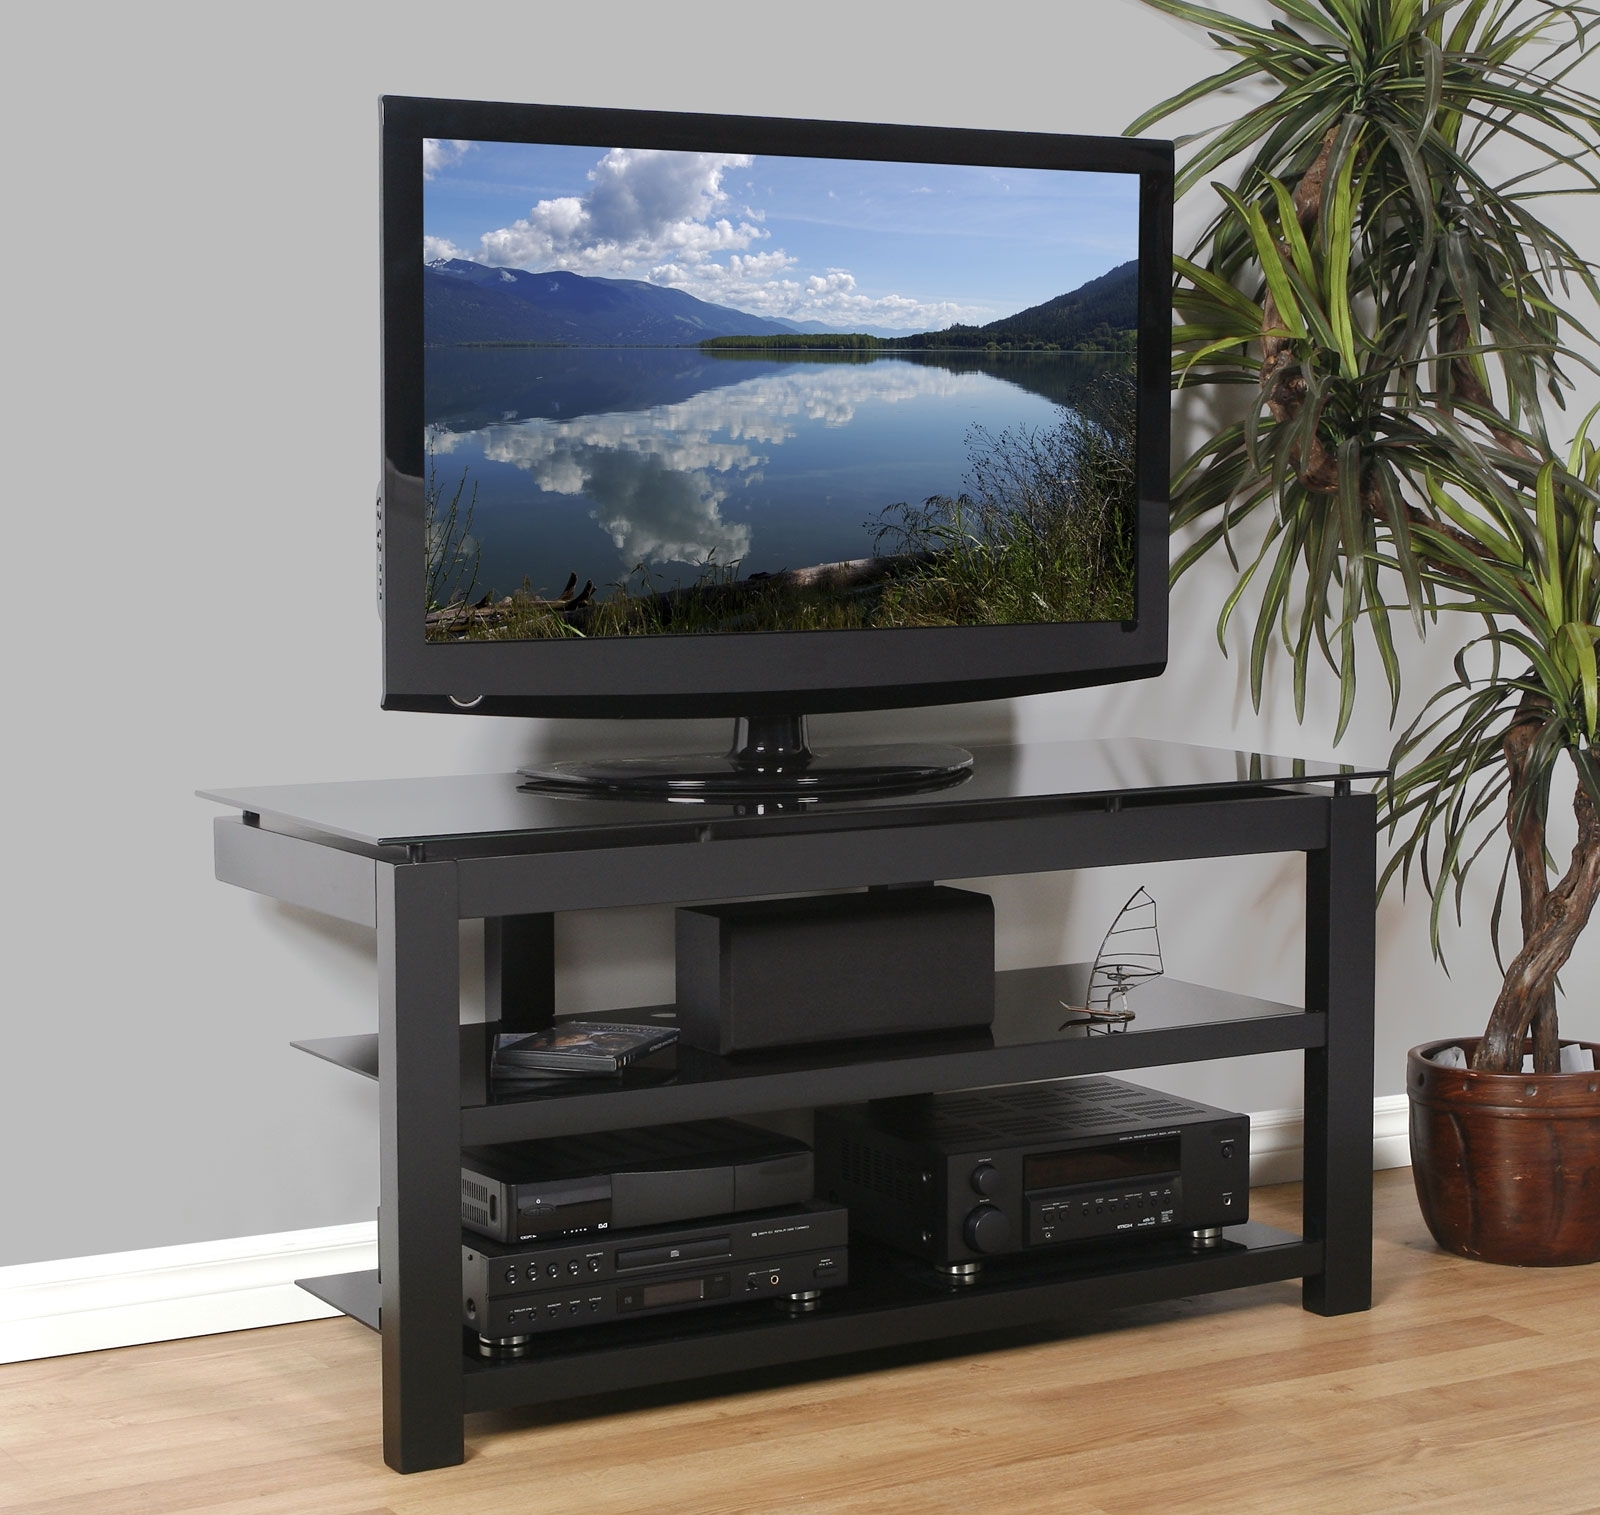 50 Inch Flat Screen Tv Stand – Natural Wood Veneers And Black Regarding Well Known Flat Screen Shelving (View 2 of 15)